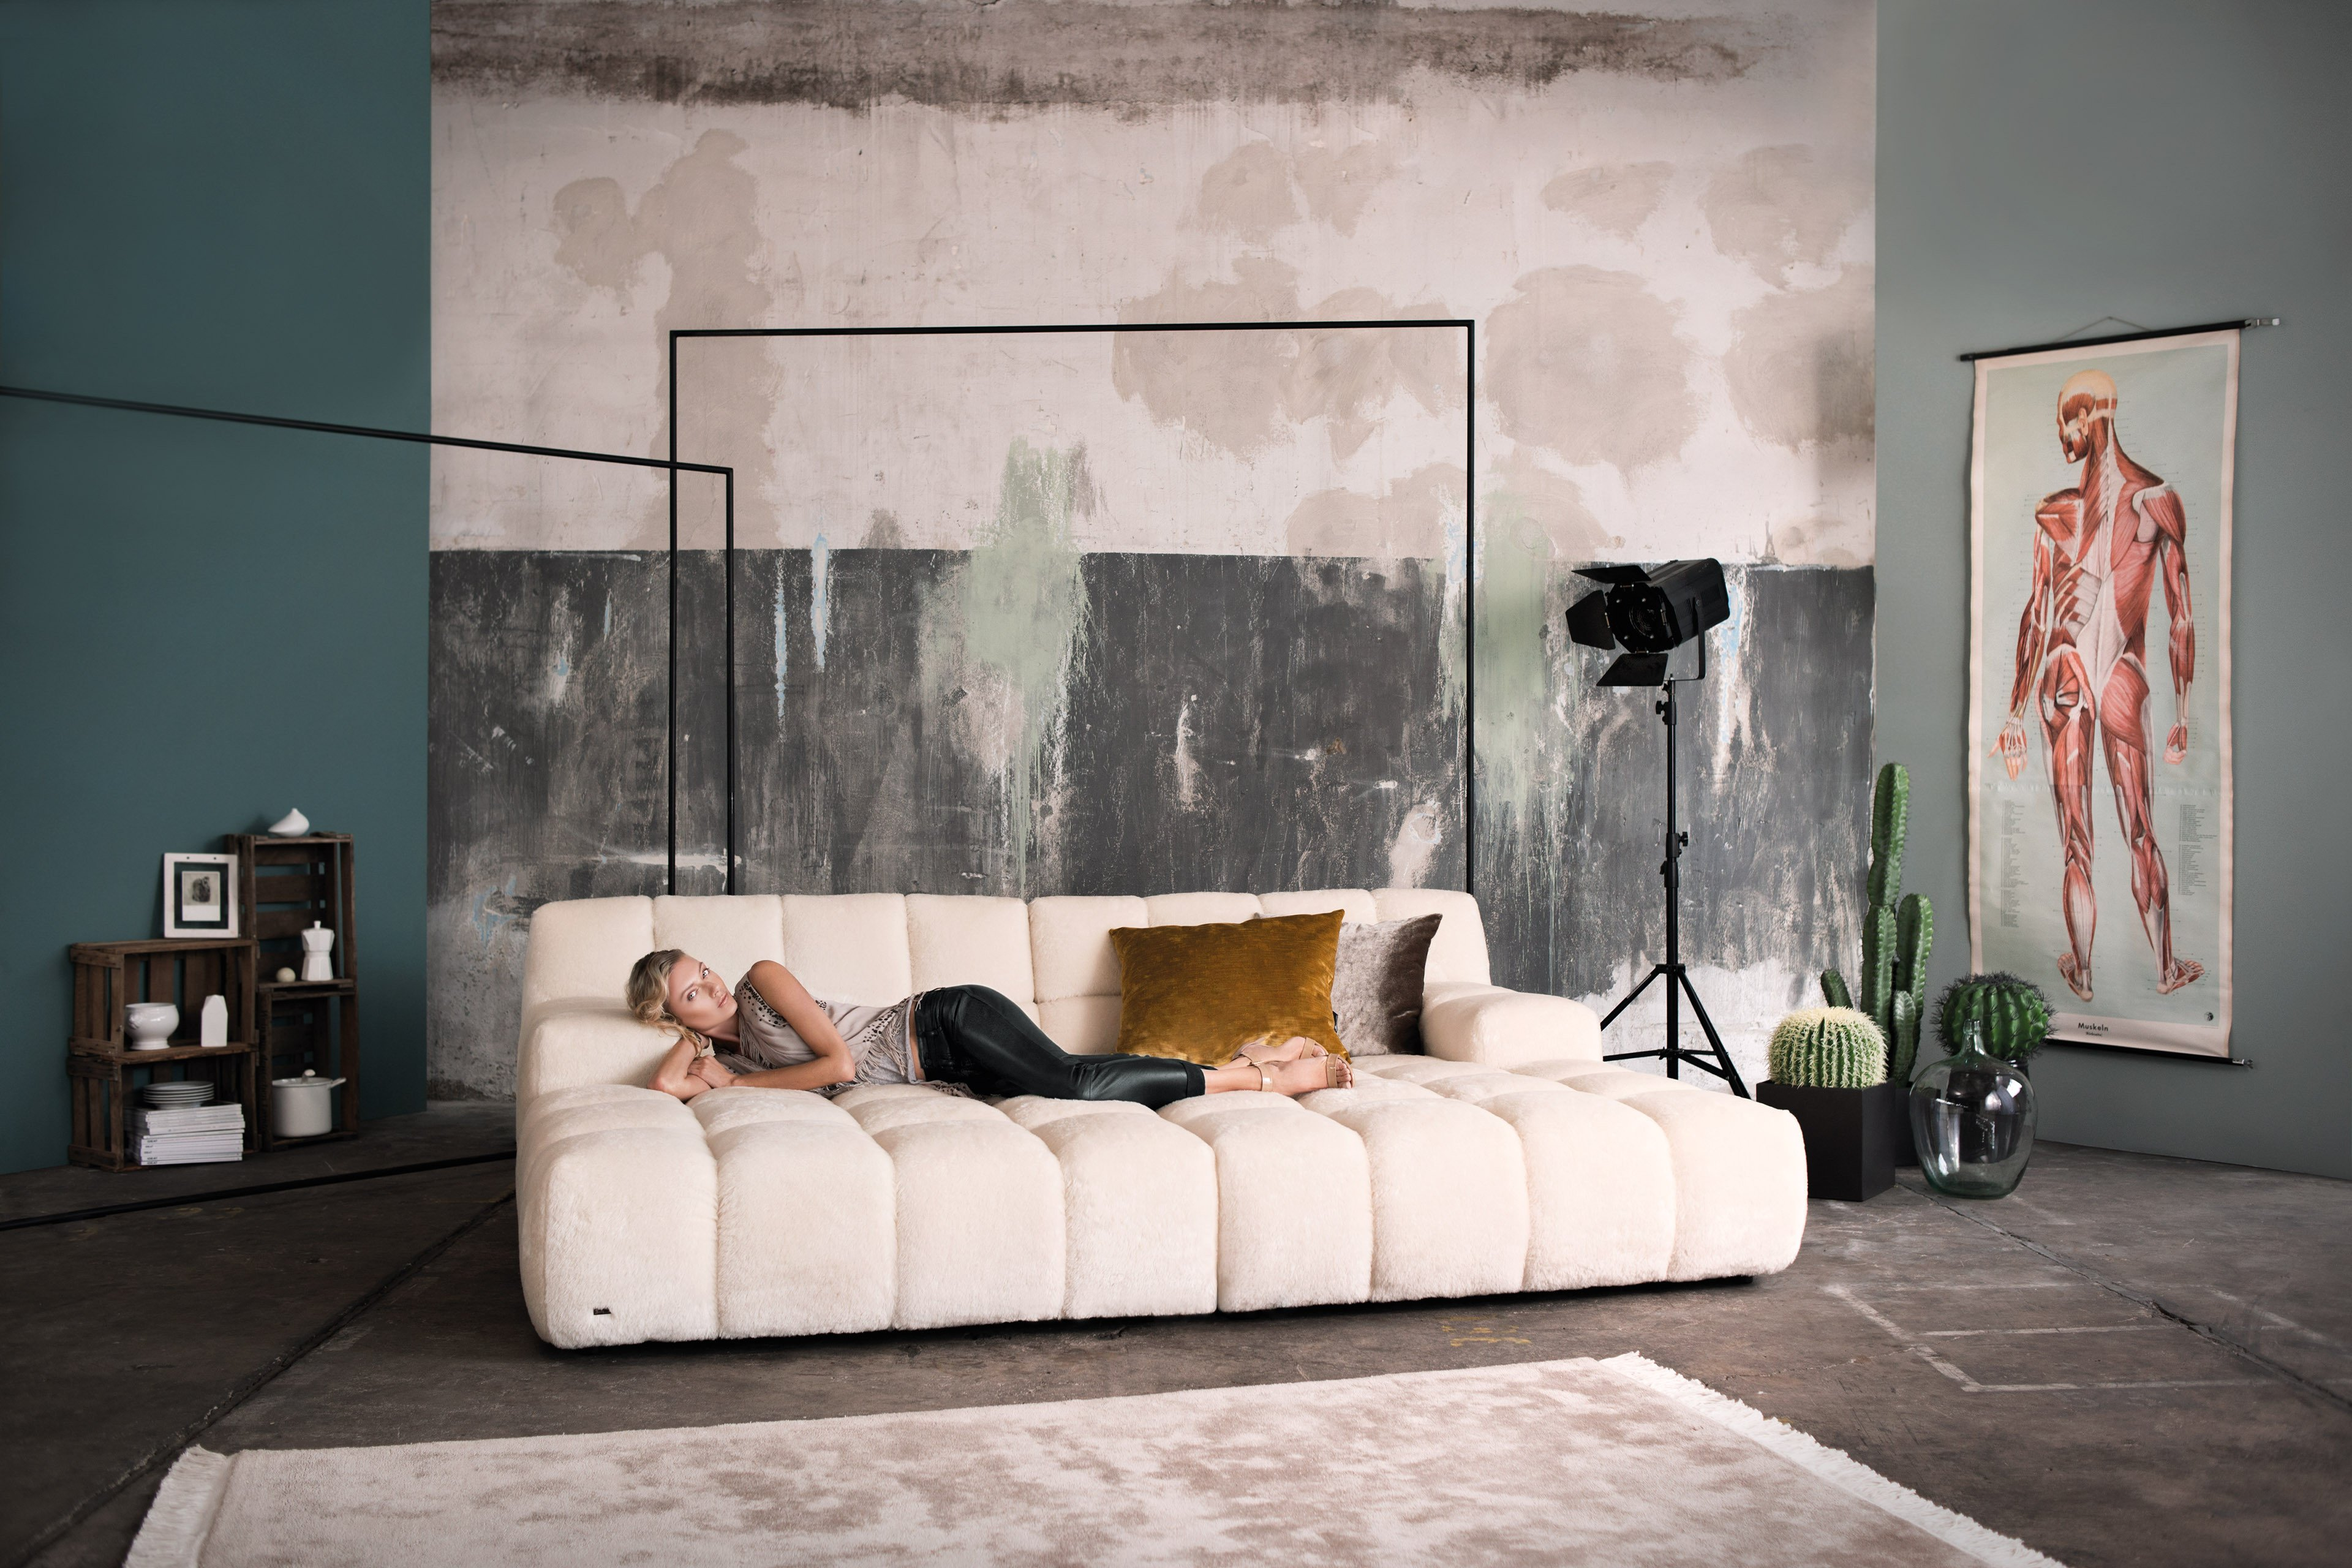 bretz ocean 7 sofa creme m bel letz ihr online shop. Black Bedroom Furniture Sets. Home Design Ideas